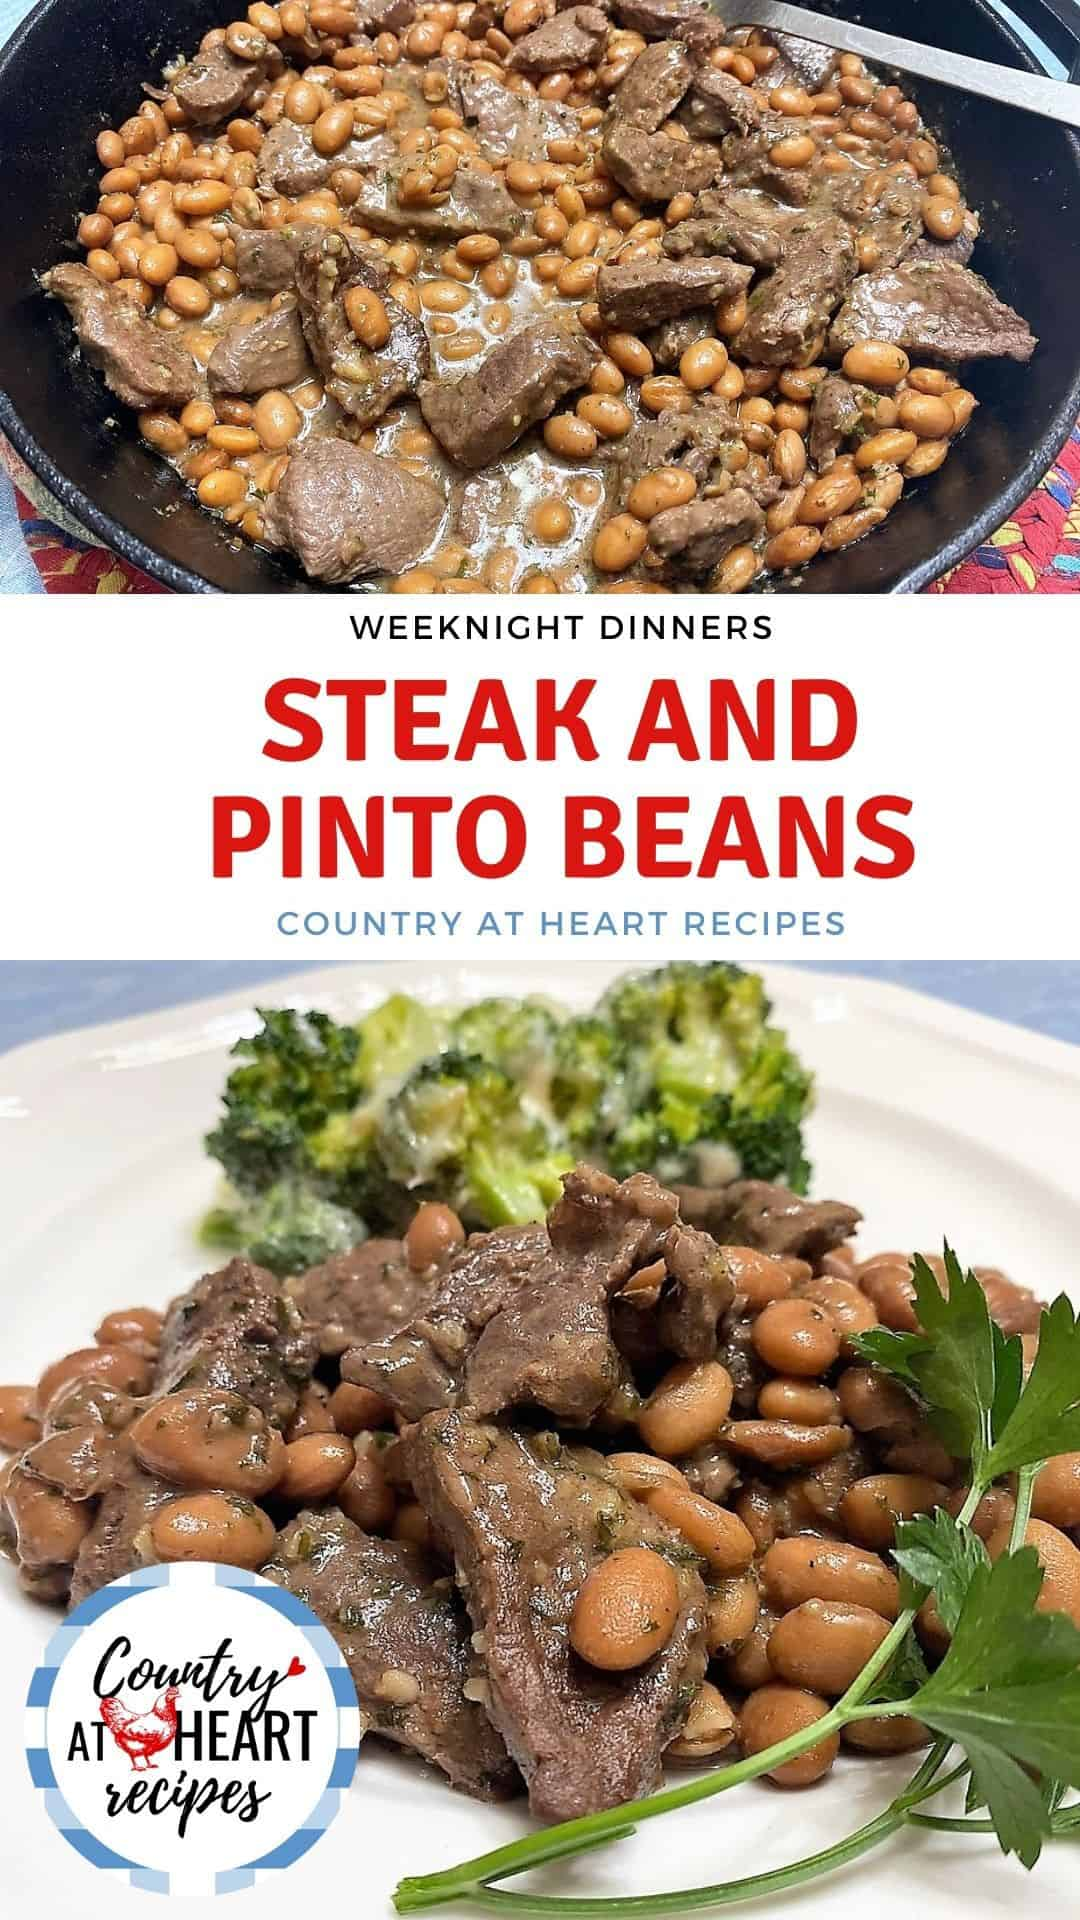 Steak and Pinto Beans